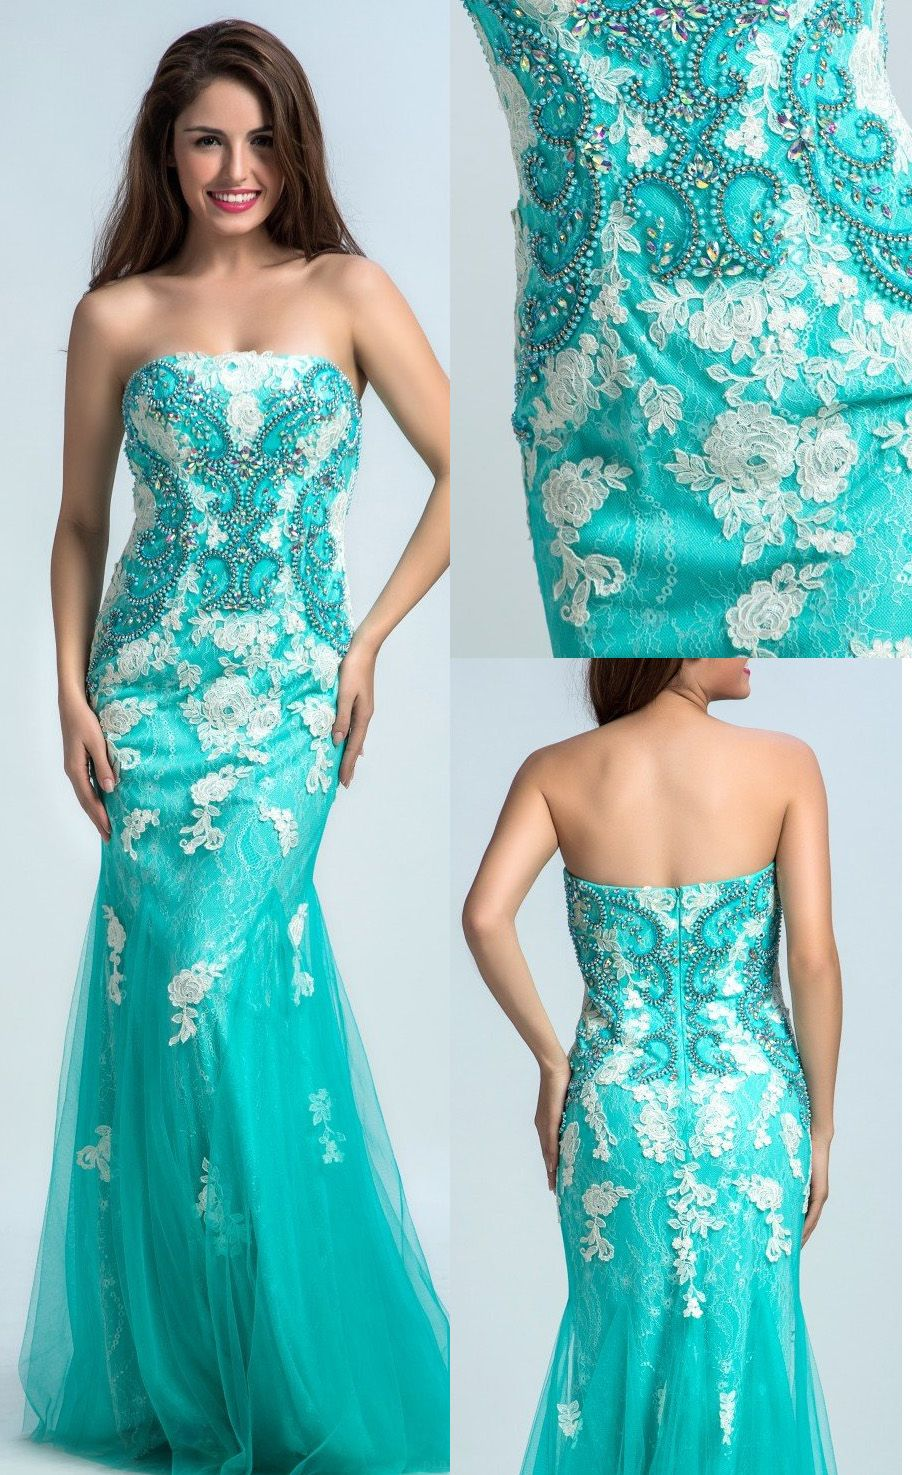 Sleeveless dresses long light blue prom evening dresses with lace